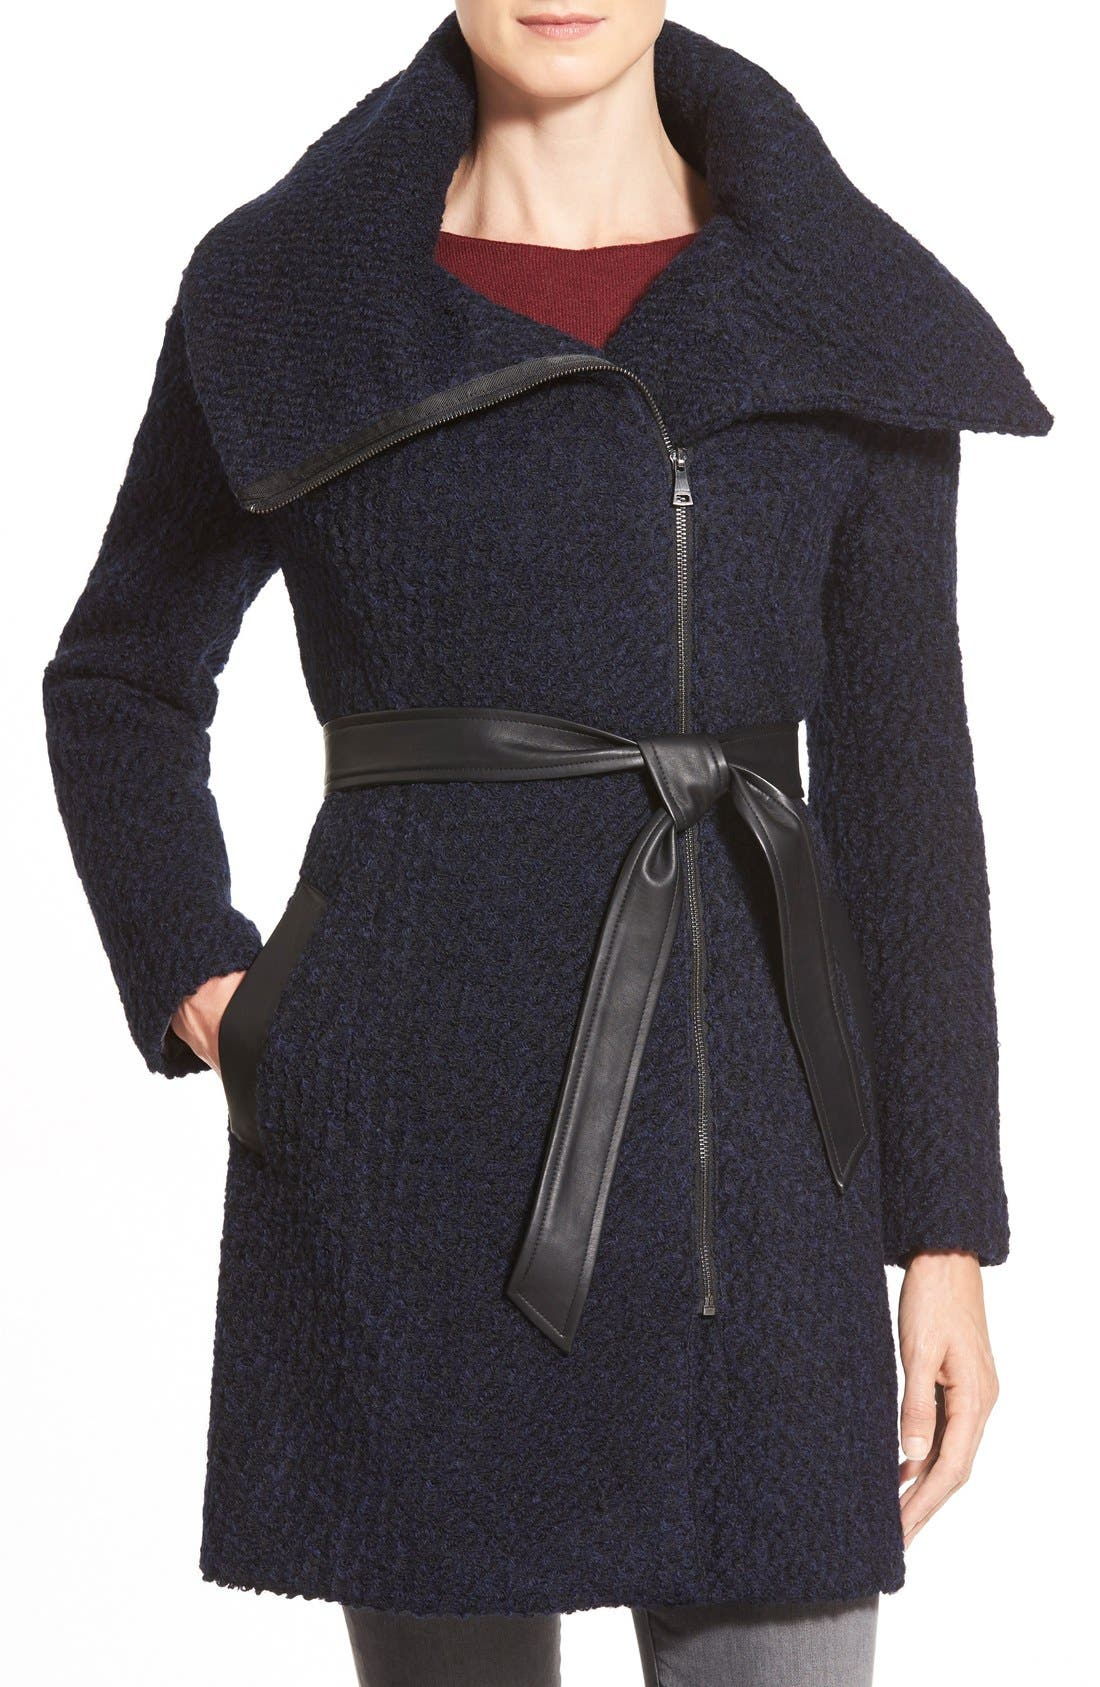 Belted Asymmetrical Bouclé Wool Blend Coat,                         Main,                         color, Black/ Navy